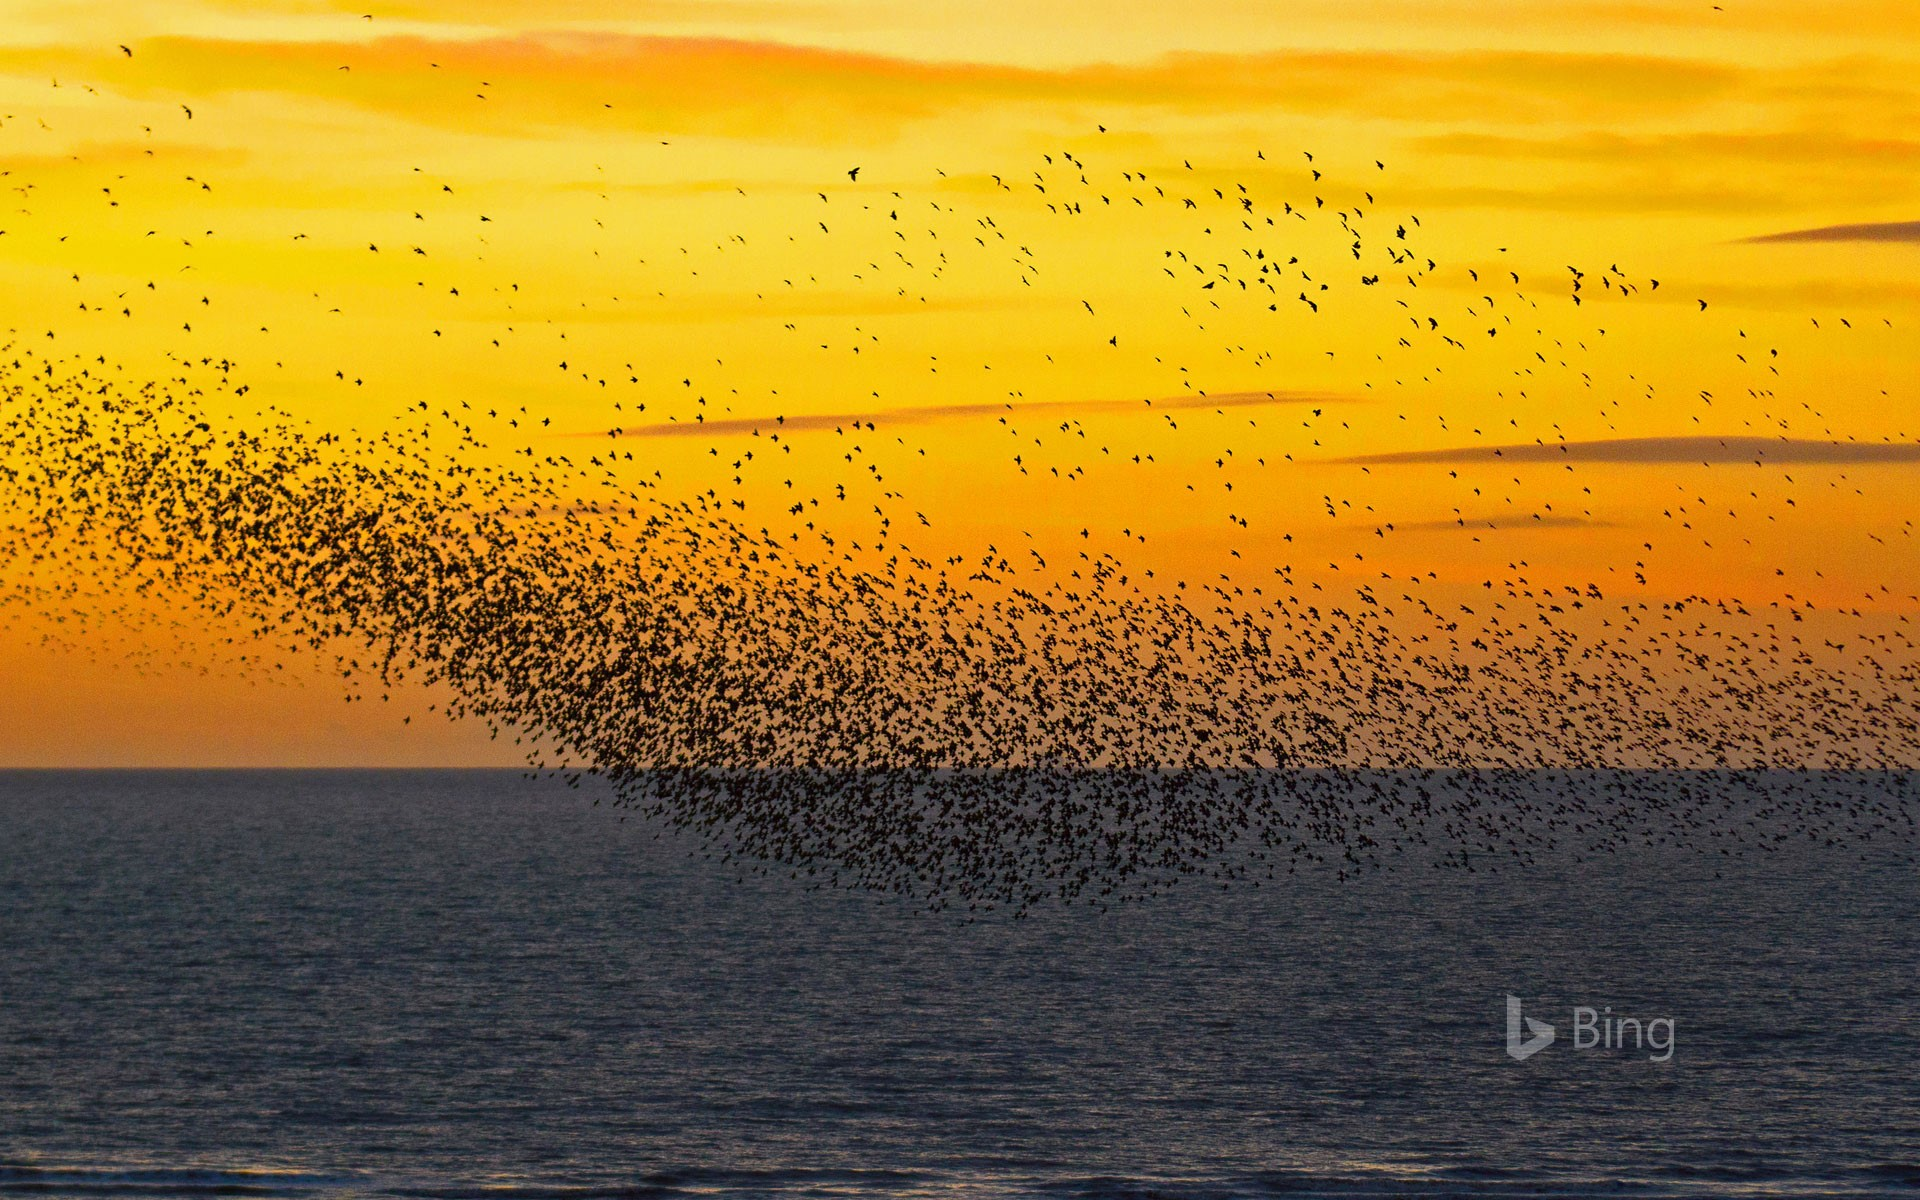 Starlings at sunset in Blackpool, England